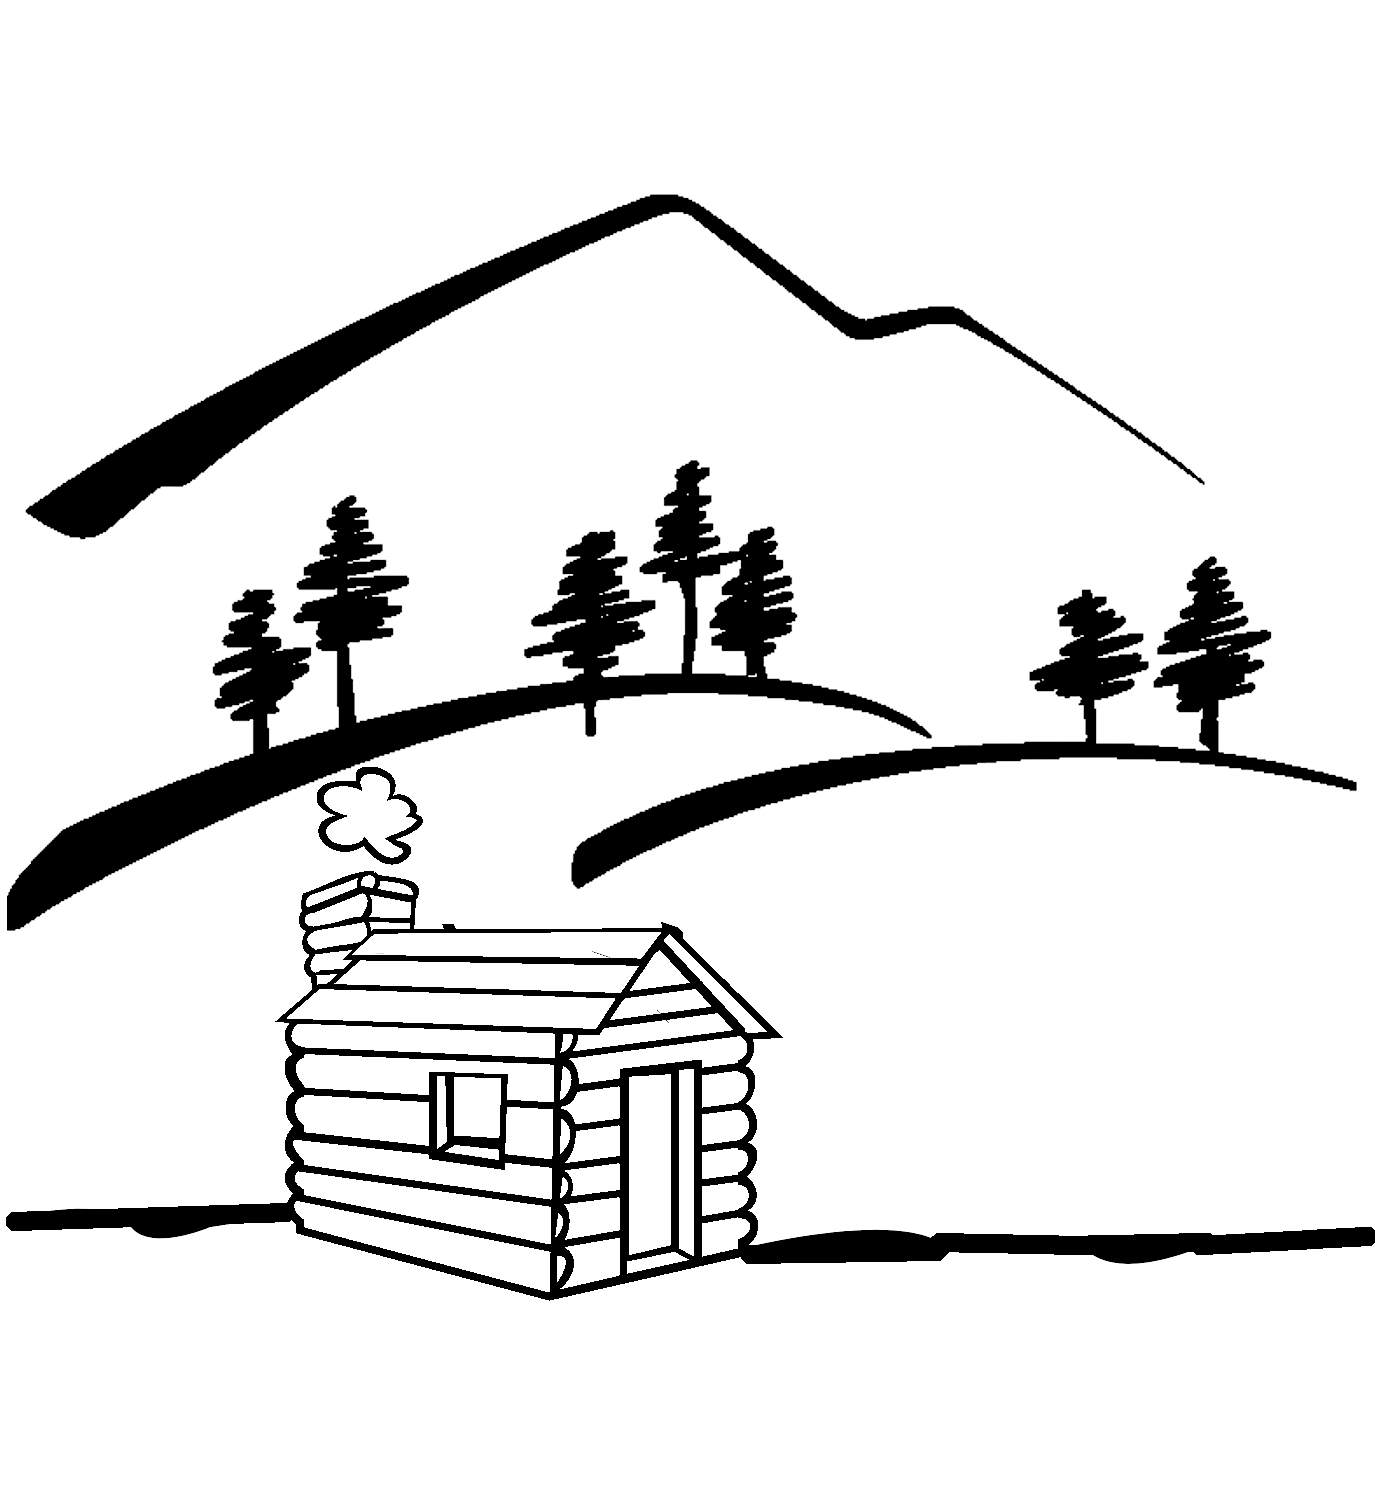 Mountain cabin clipart graphic free Mountain Cabin fever cure it   Clipart Panda - Free Clipart ... graphic free